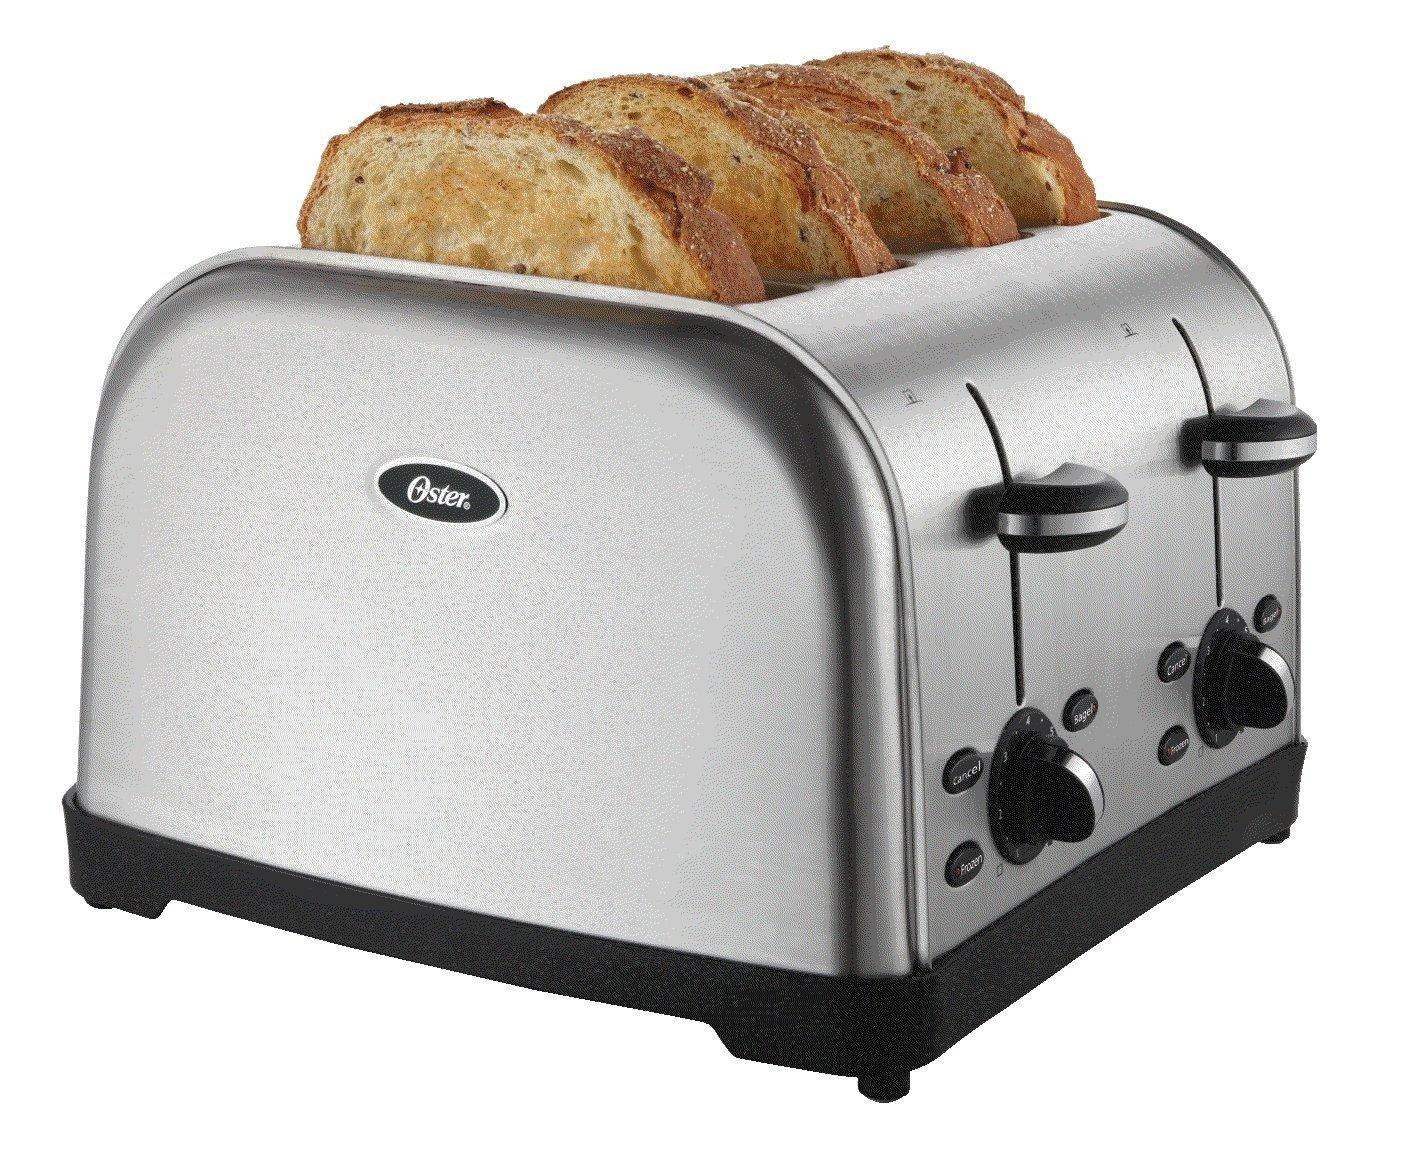 Amazon.com: Oster TSSTTRWF4S 4-Slice Toaster: Kitchen & Dining